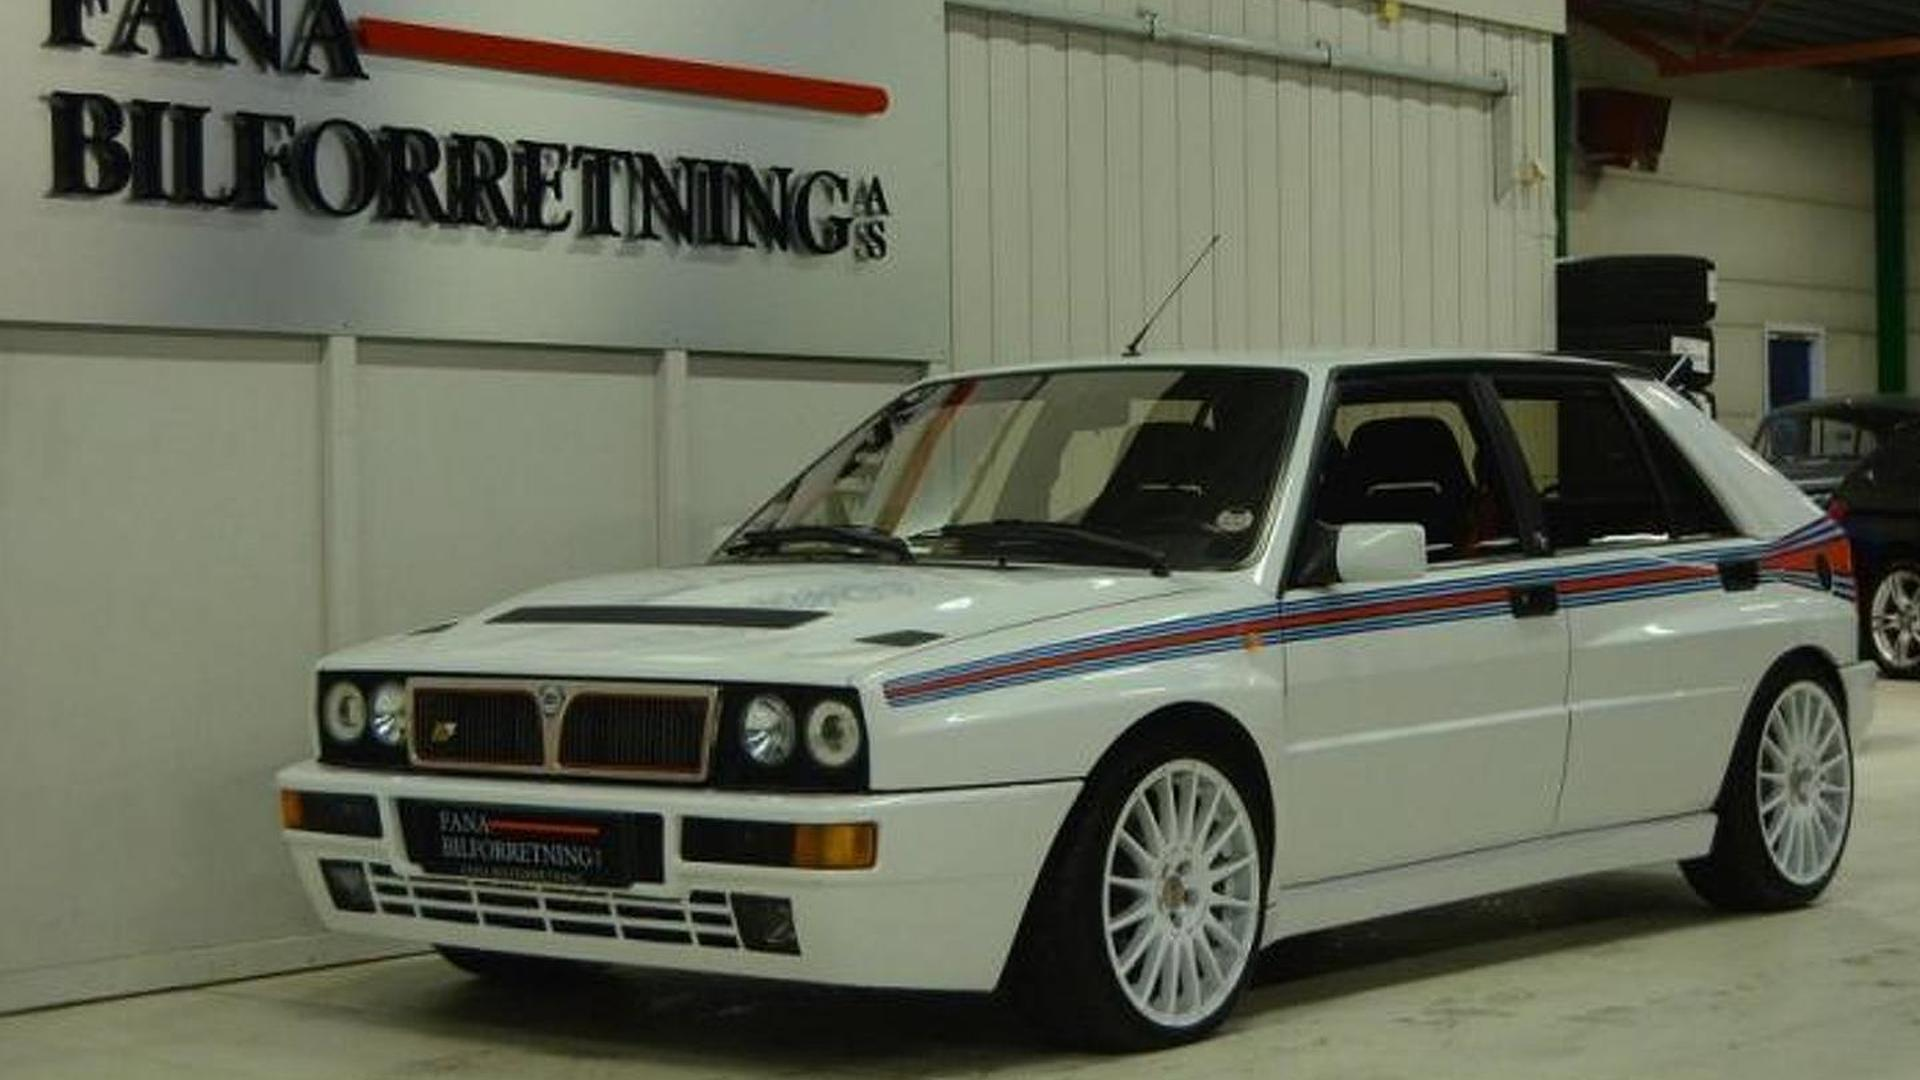 Mint Condition Lancia Delta Hf Integrale Evoluzione